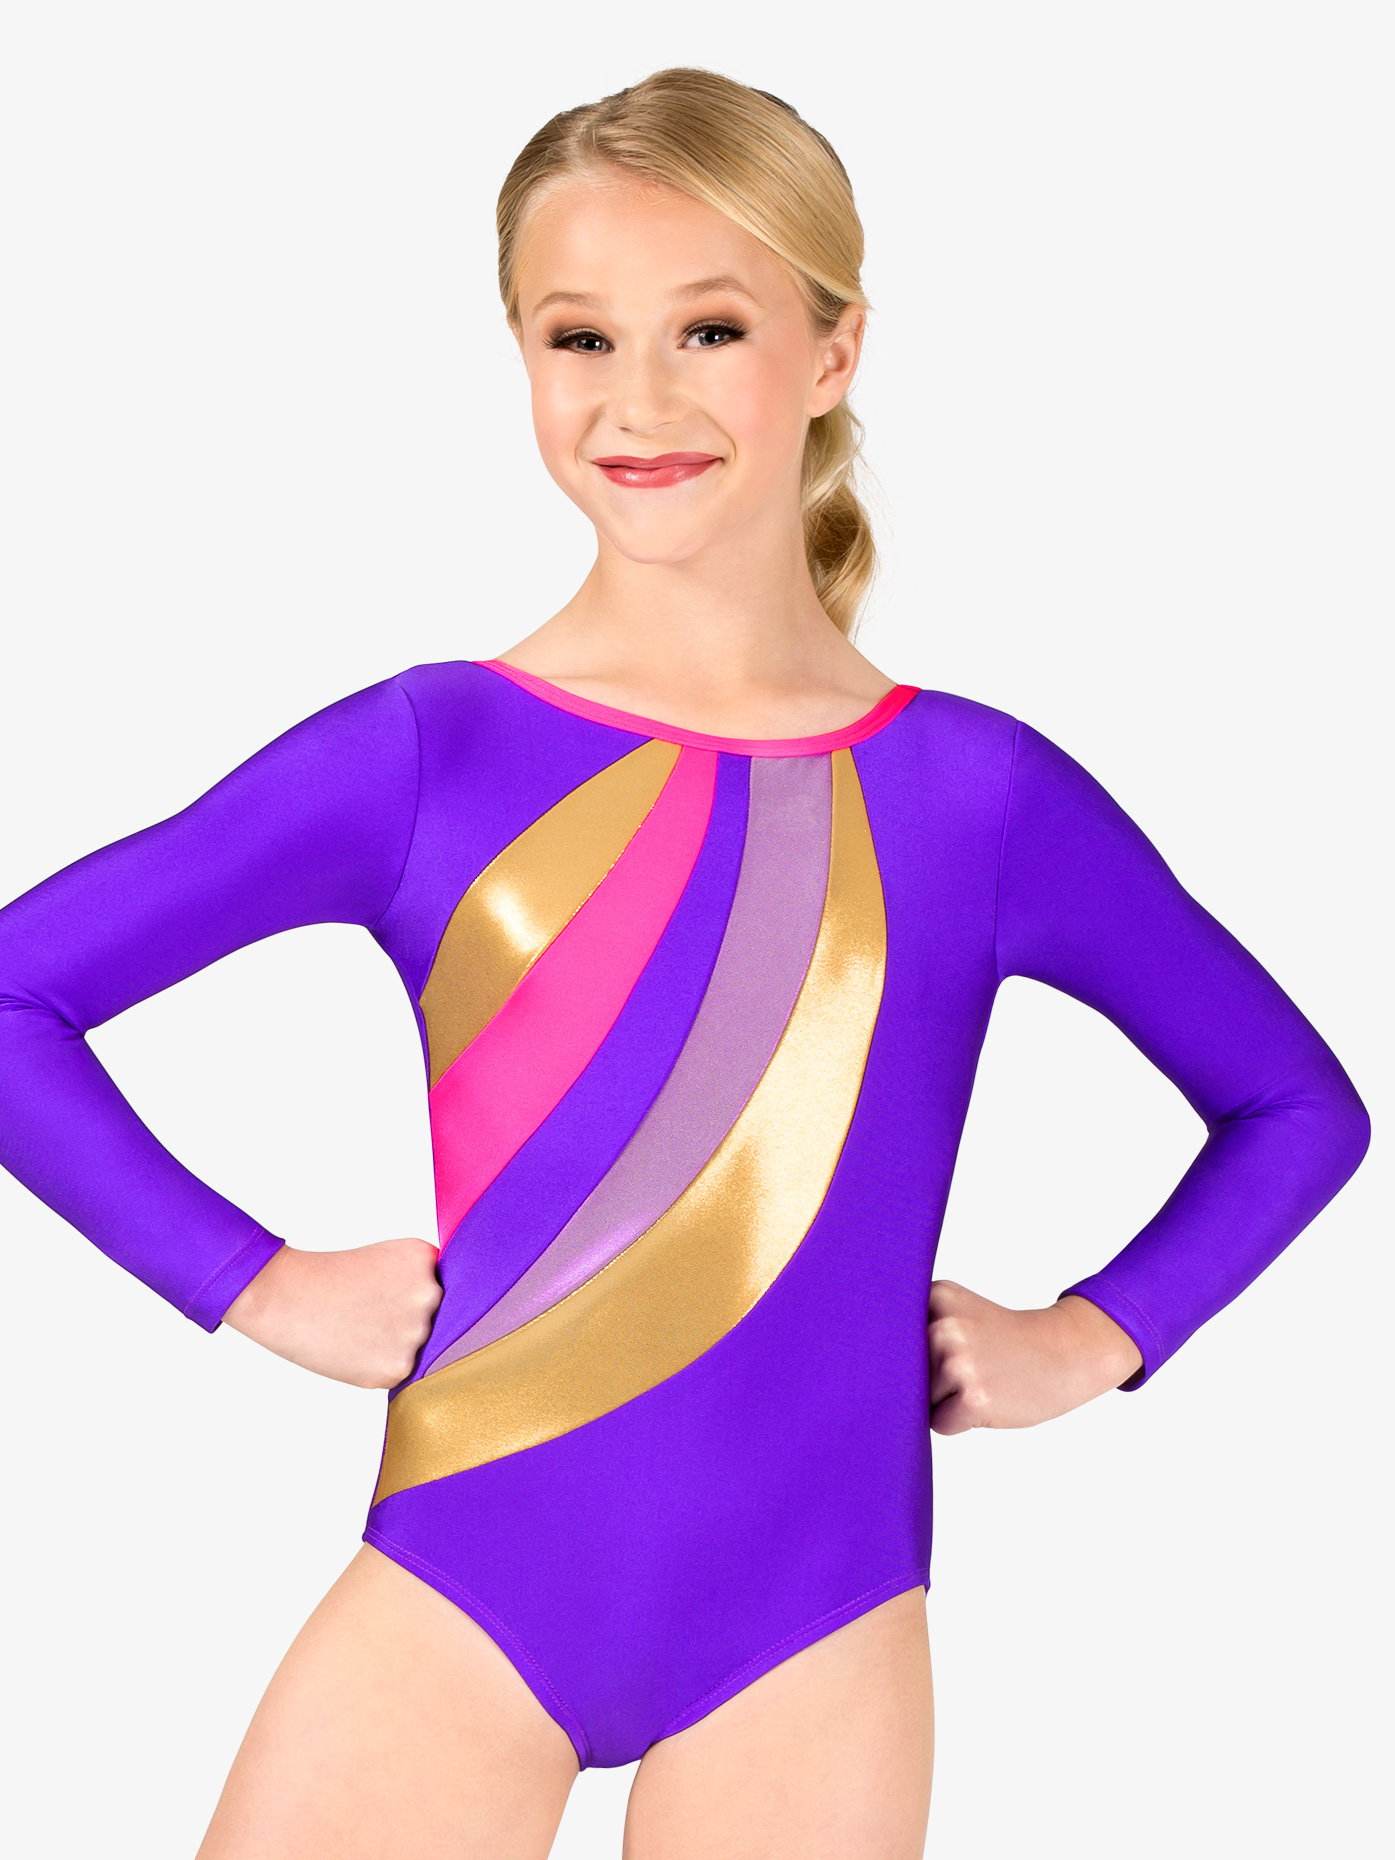 9b9a9e02d72f Gymnastics Apparel at DancewearDeals.com